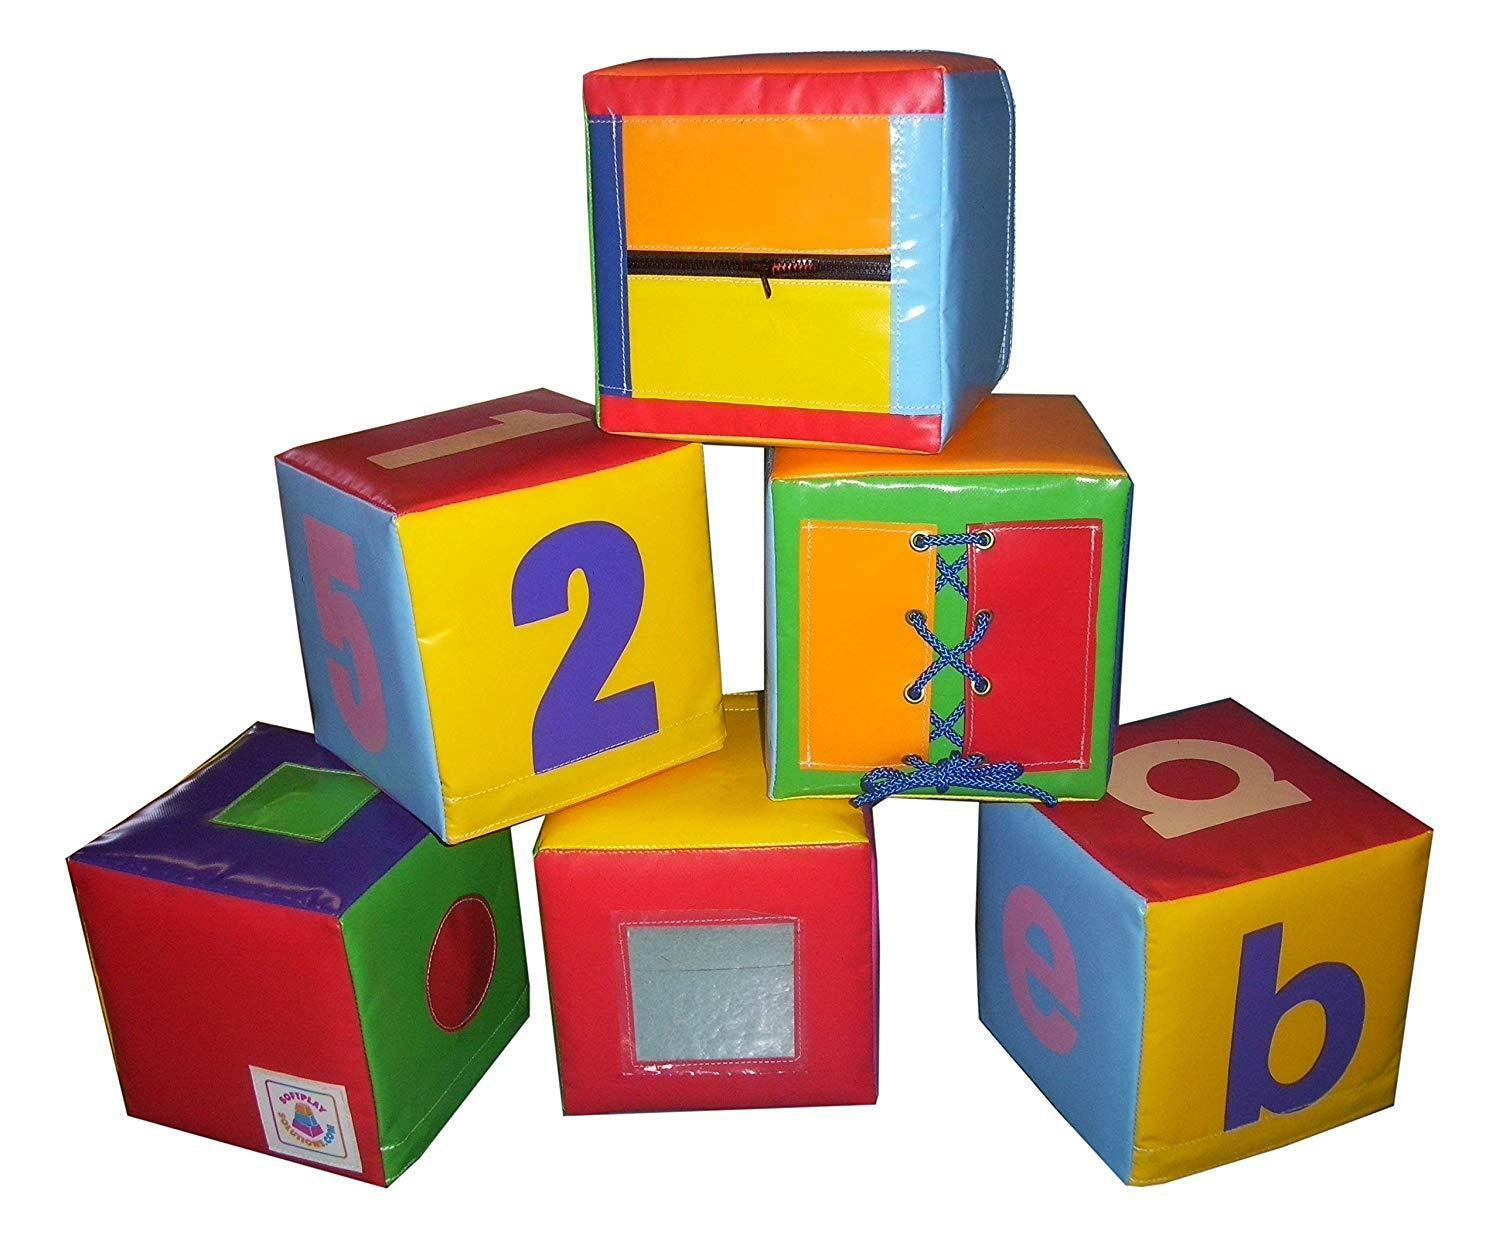 SOFT PLAY SET OF 6 ACTIVITY CUBES   High quality soft play equipment